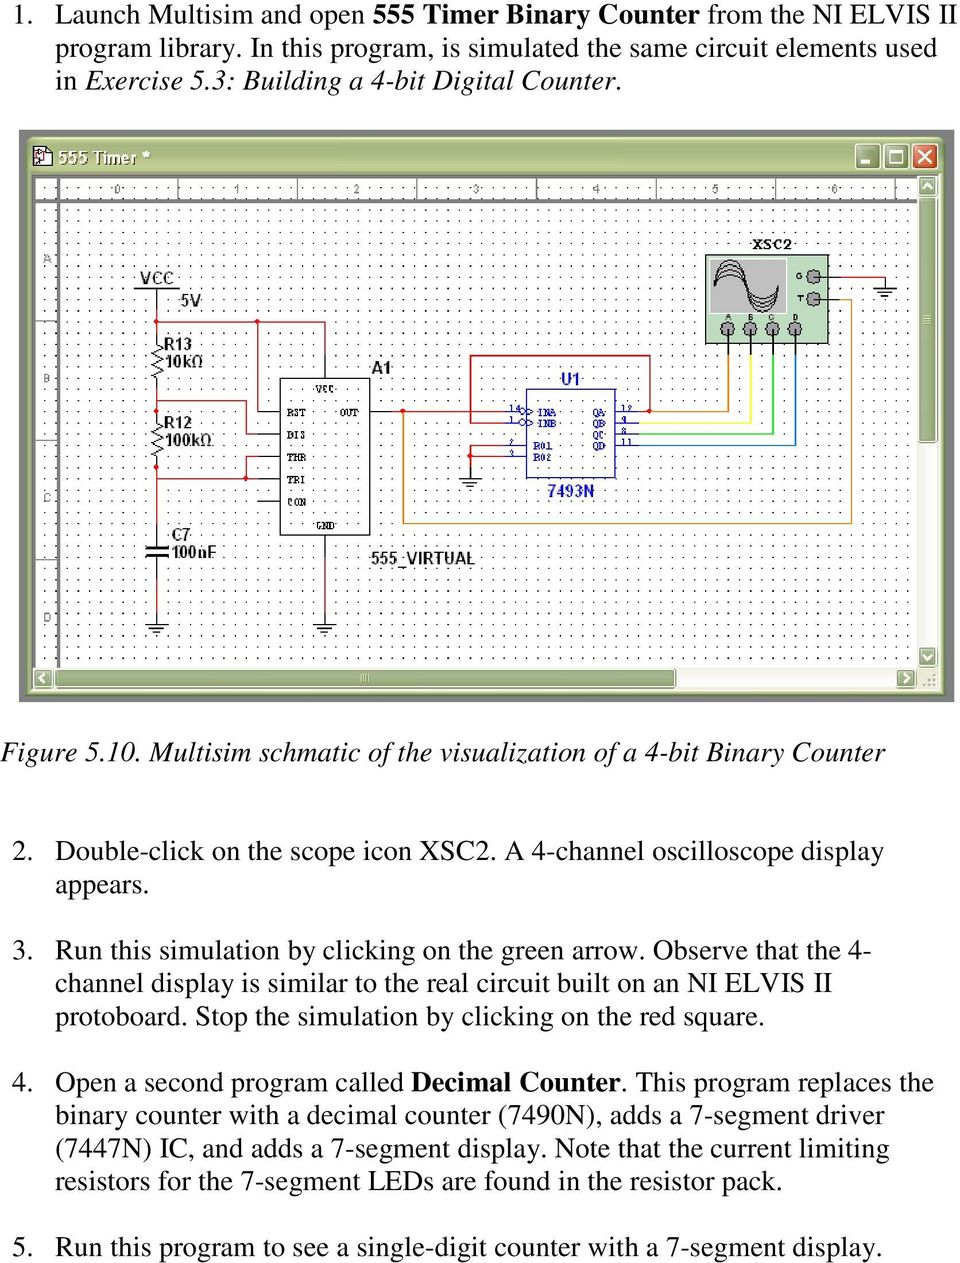 7 Segment Decoder Circuit Diagram Lab 5 Digital I O Figure 50 Four Bit Counter On Display Run This Simulation By Clicking The Green Arrow Observe That 4 Channel